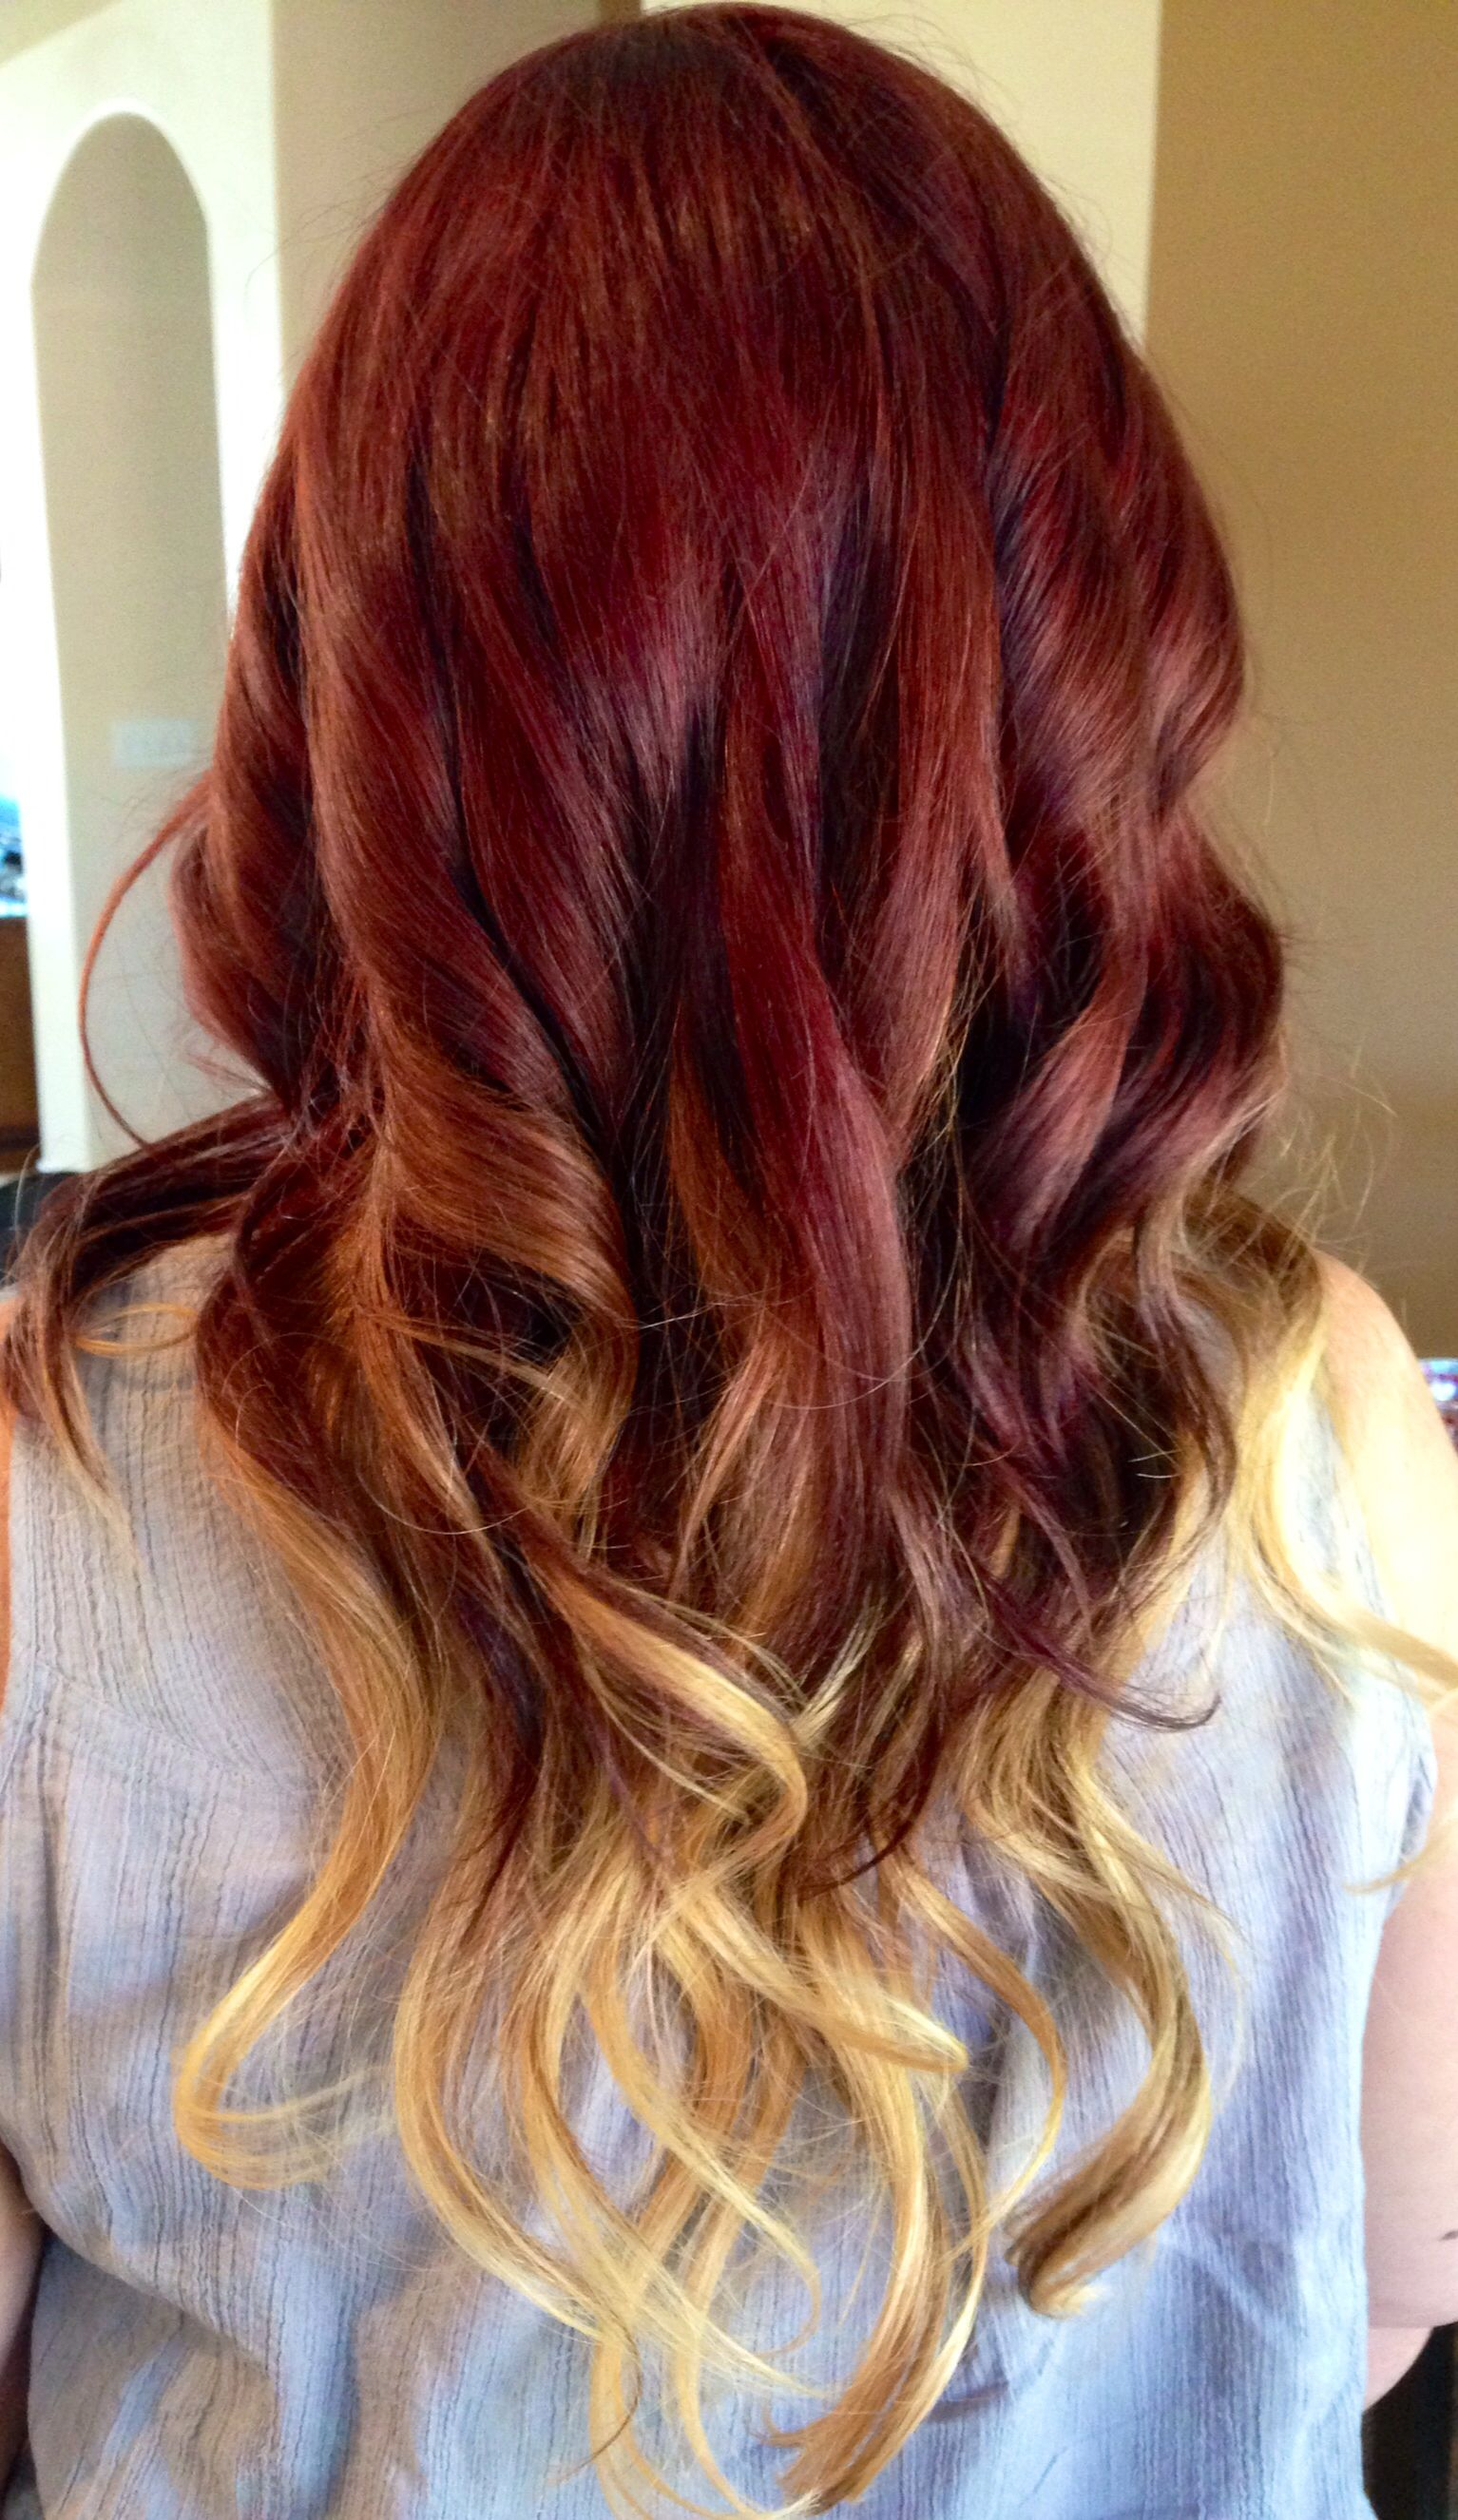 Ombre Reds And Blonde Fireandice Red Blonde Ombre Hair Blonde Hair Tips Short Ombre Hair